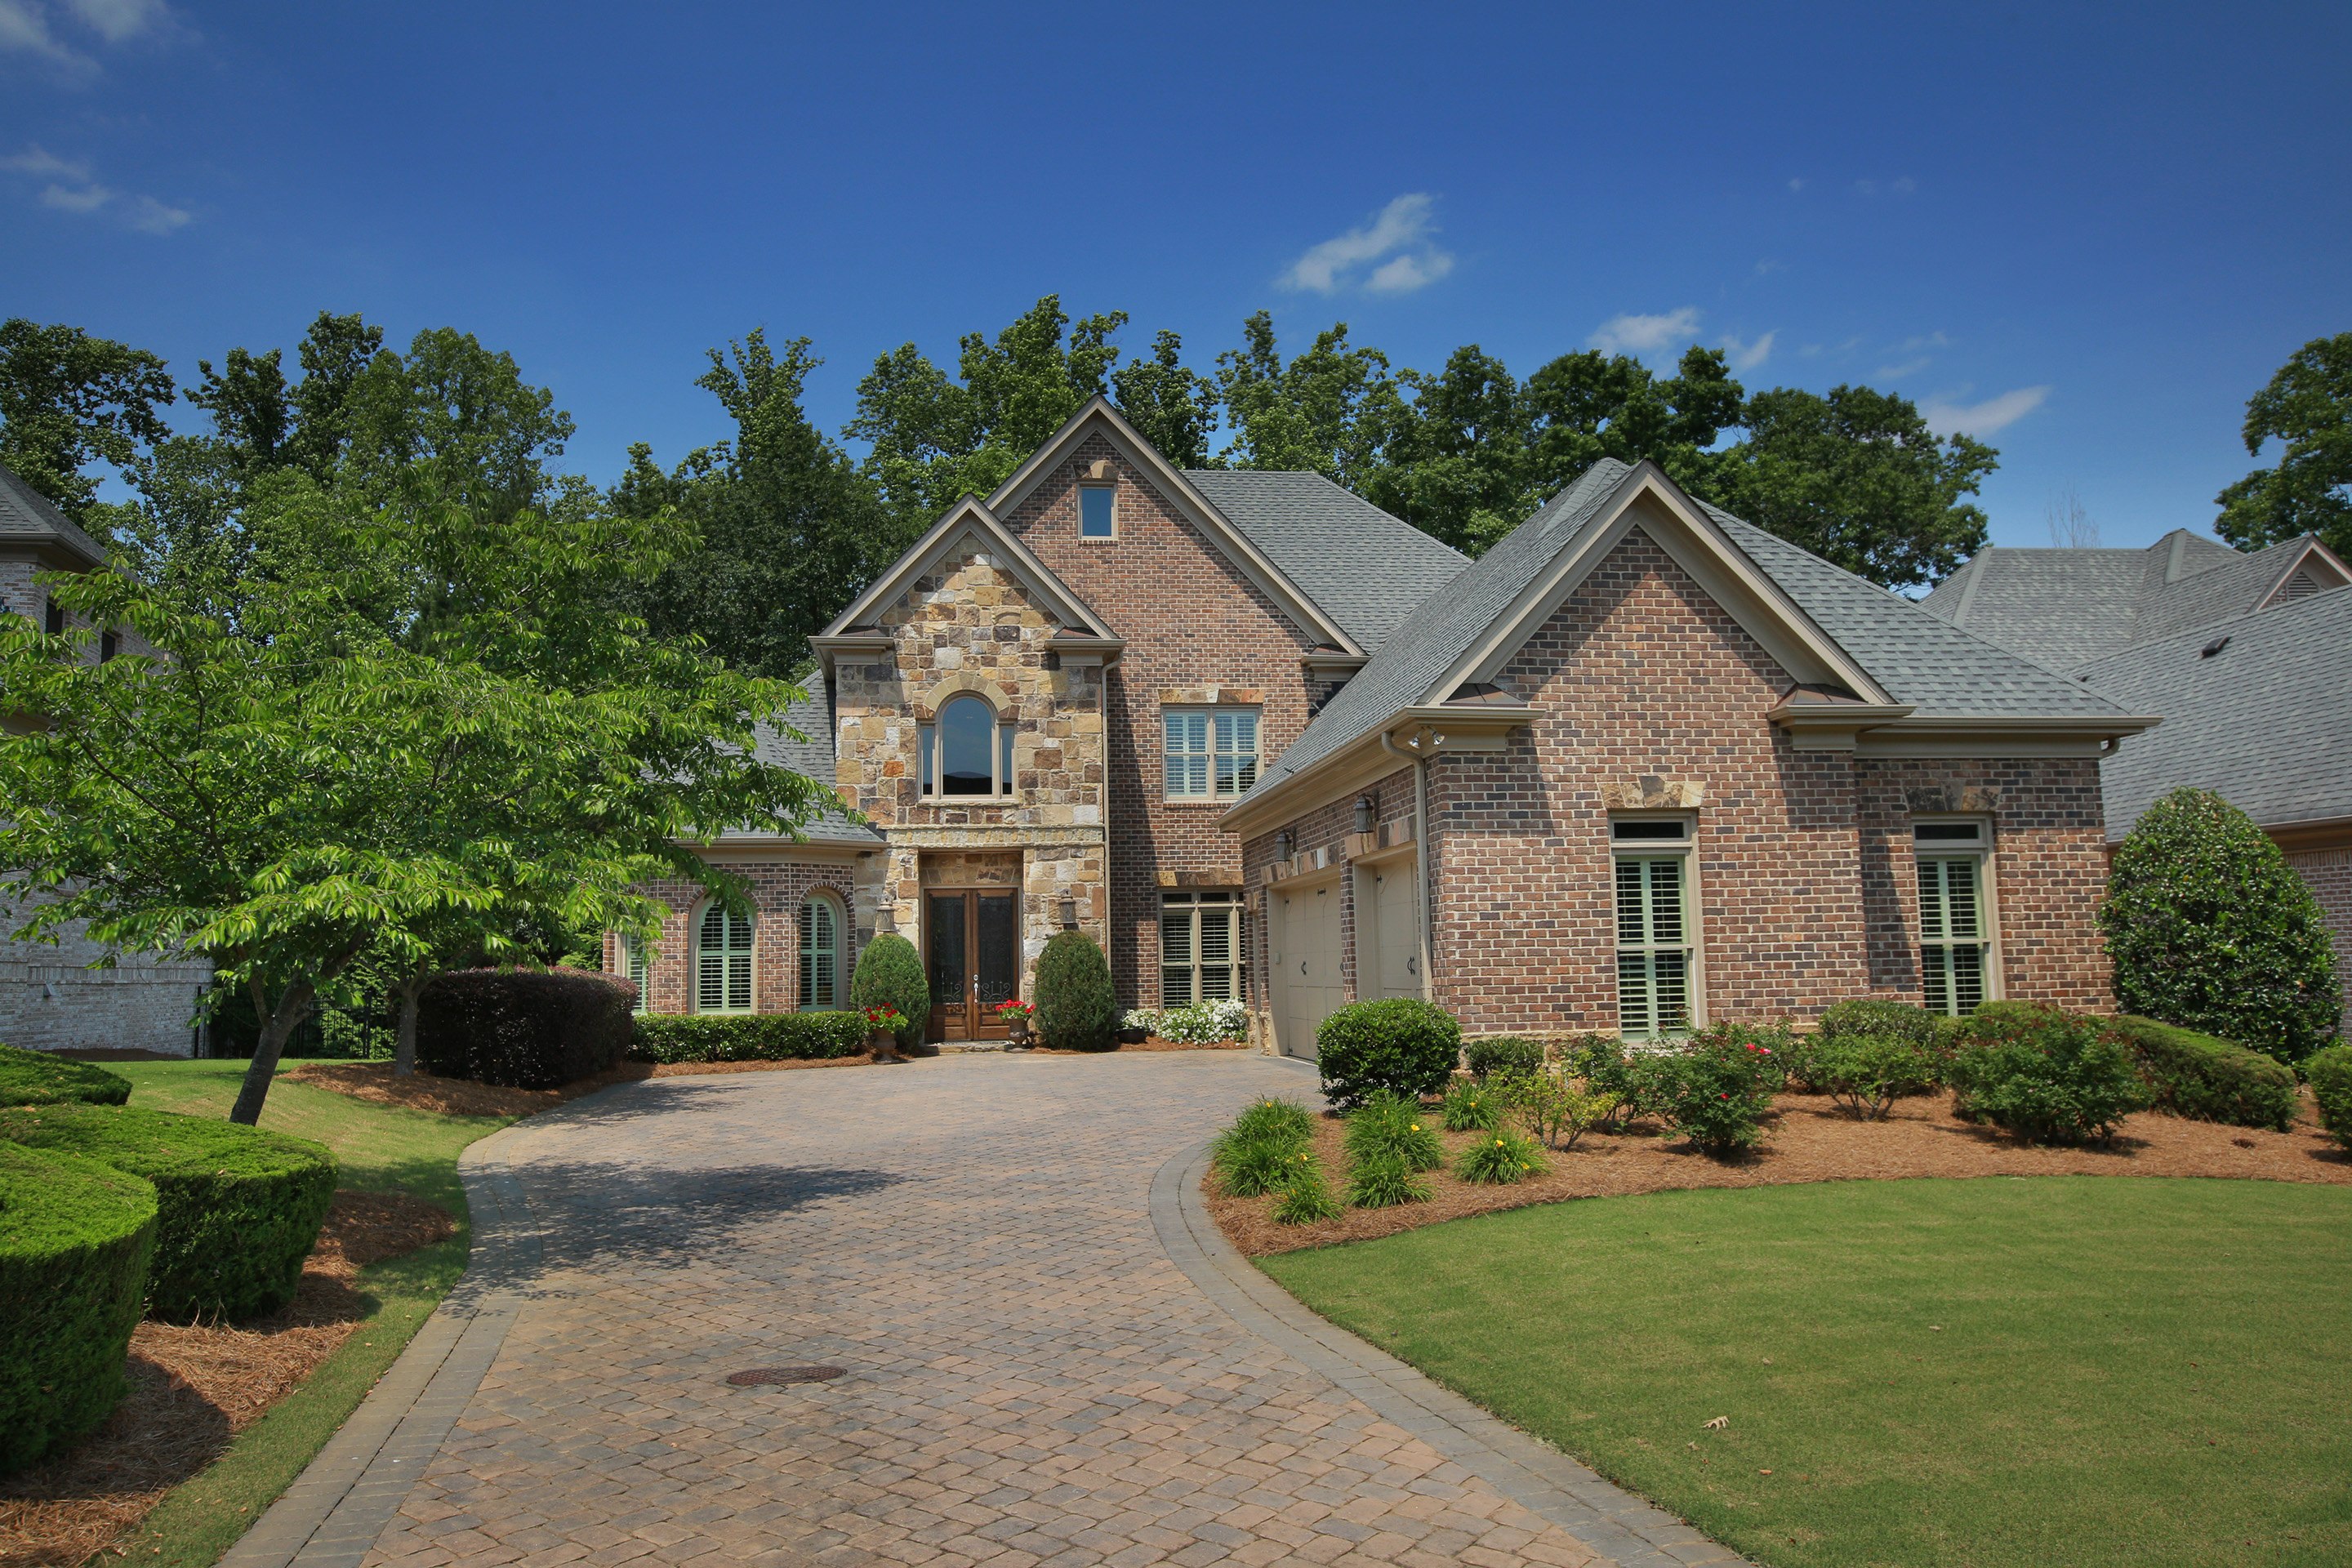 Villa per Vendita alle ore Luxury Lifestyle at it's Finest in a Gated Golf Community! 8240 Royal Melbourne Way Duluth, Georgia, 30097 Stati Uniti